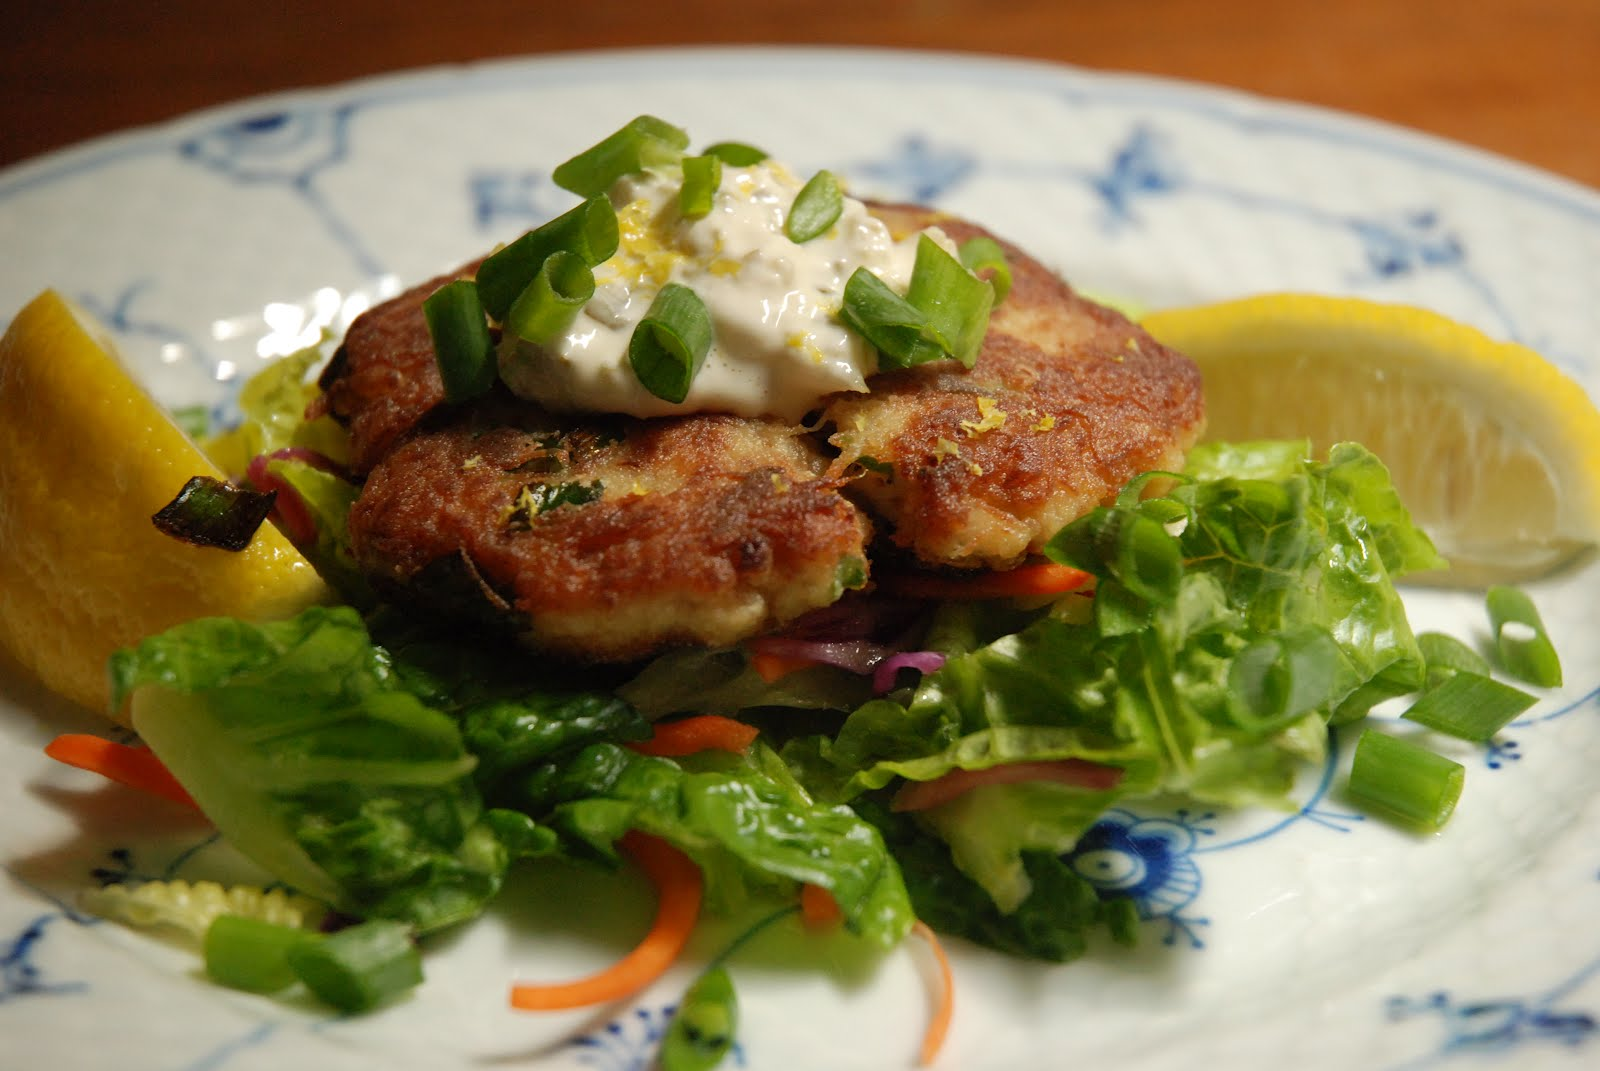 Our Gluten Free Family: Gluten Free Crab Cakes Recipe